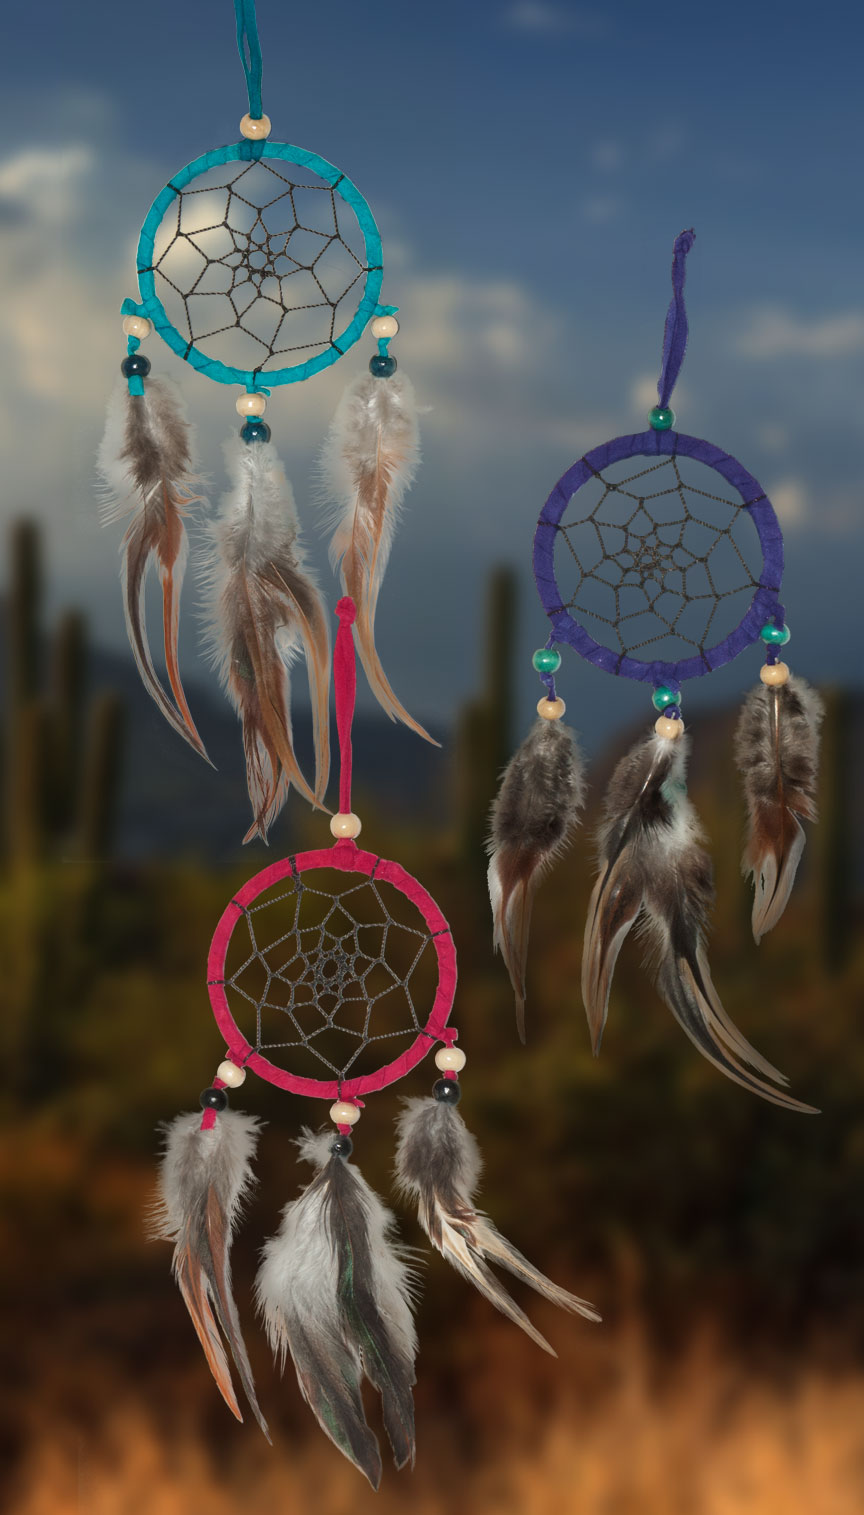 Shows an image of dreamcatchers owg015 on a scenic background